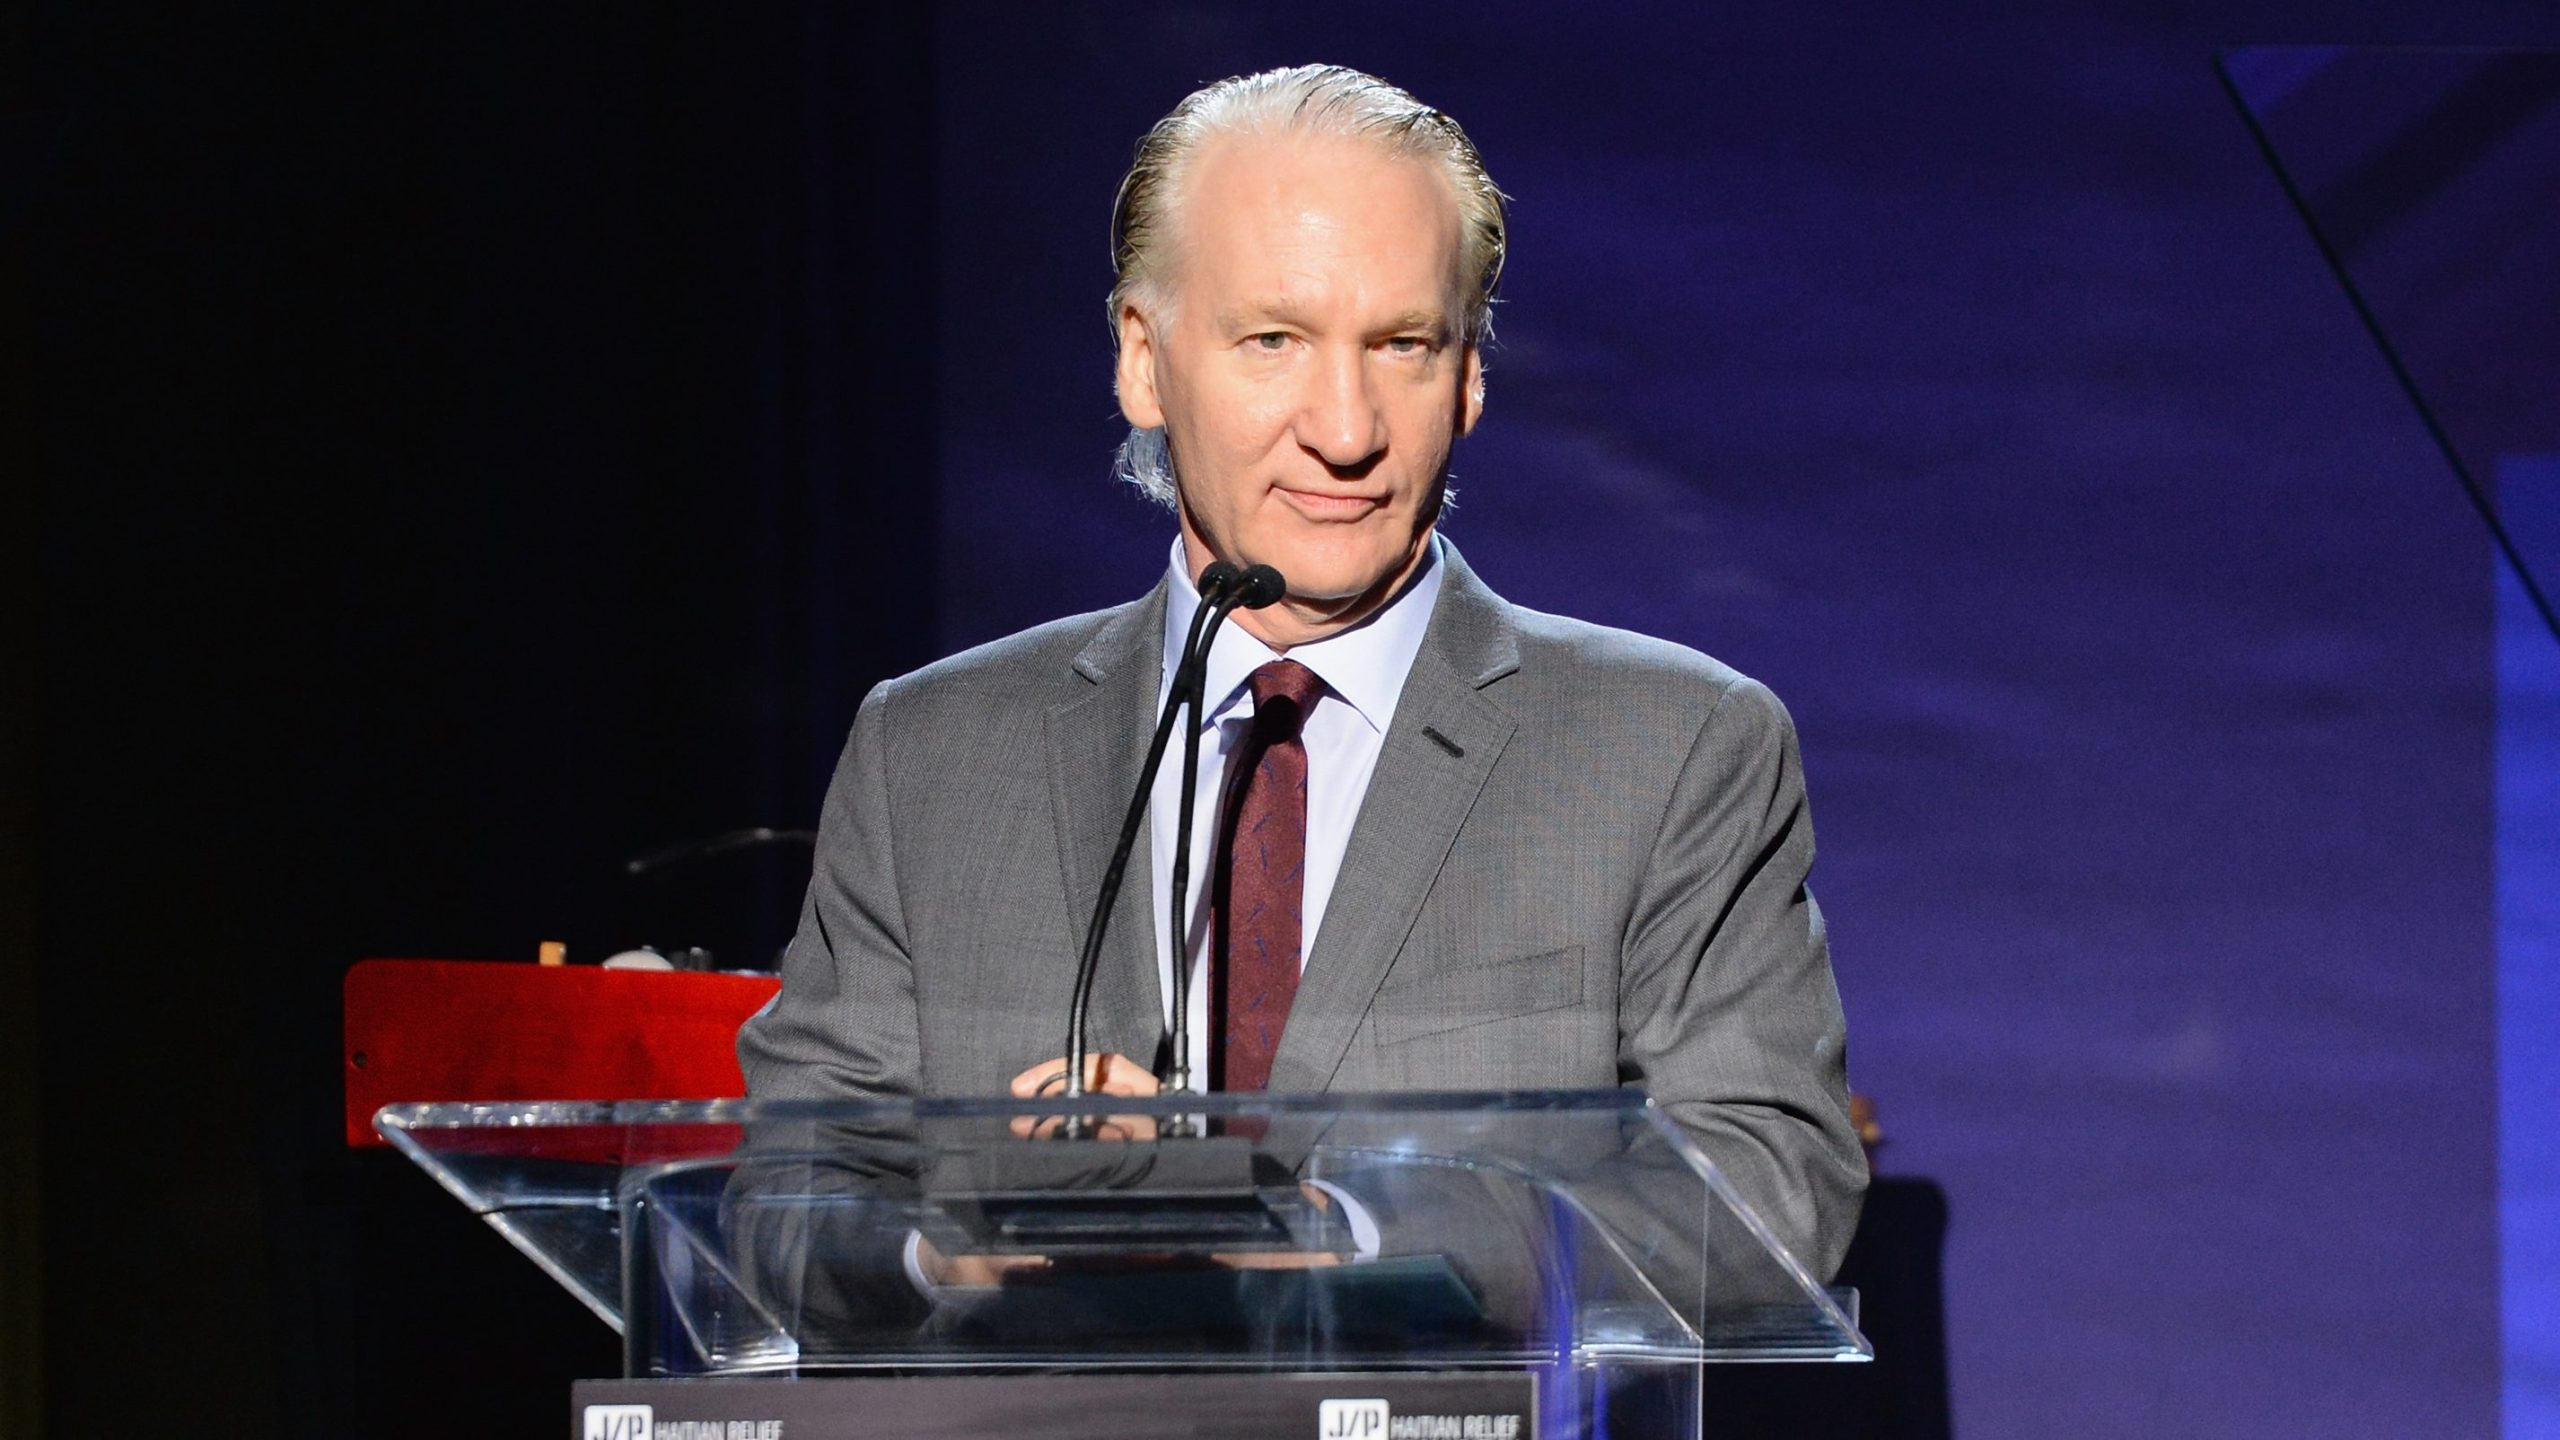 Master of ceremonies Bill Maher speaks onstage during the 6th Annual Sean Penn & Friends HAITI RISING Gala Benefiting J/P Haitian Relief Organization at Montage Hotel in Beverly Hills on Jan. 7, 2017. (Michael Kovac / Getty Images)